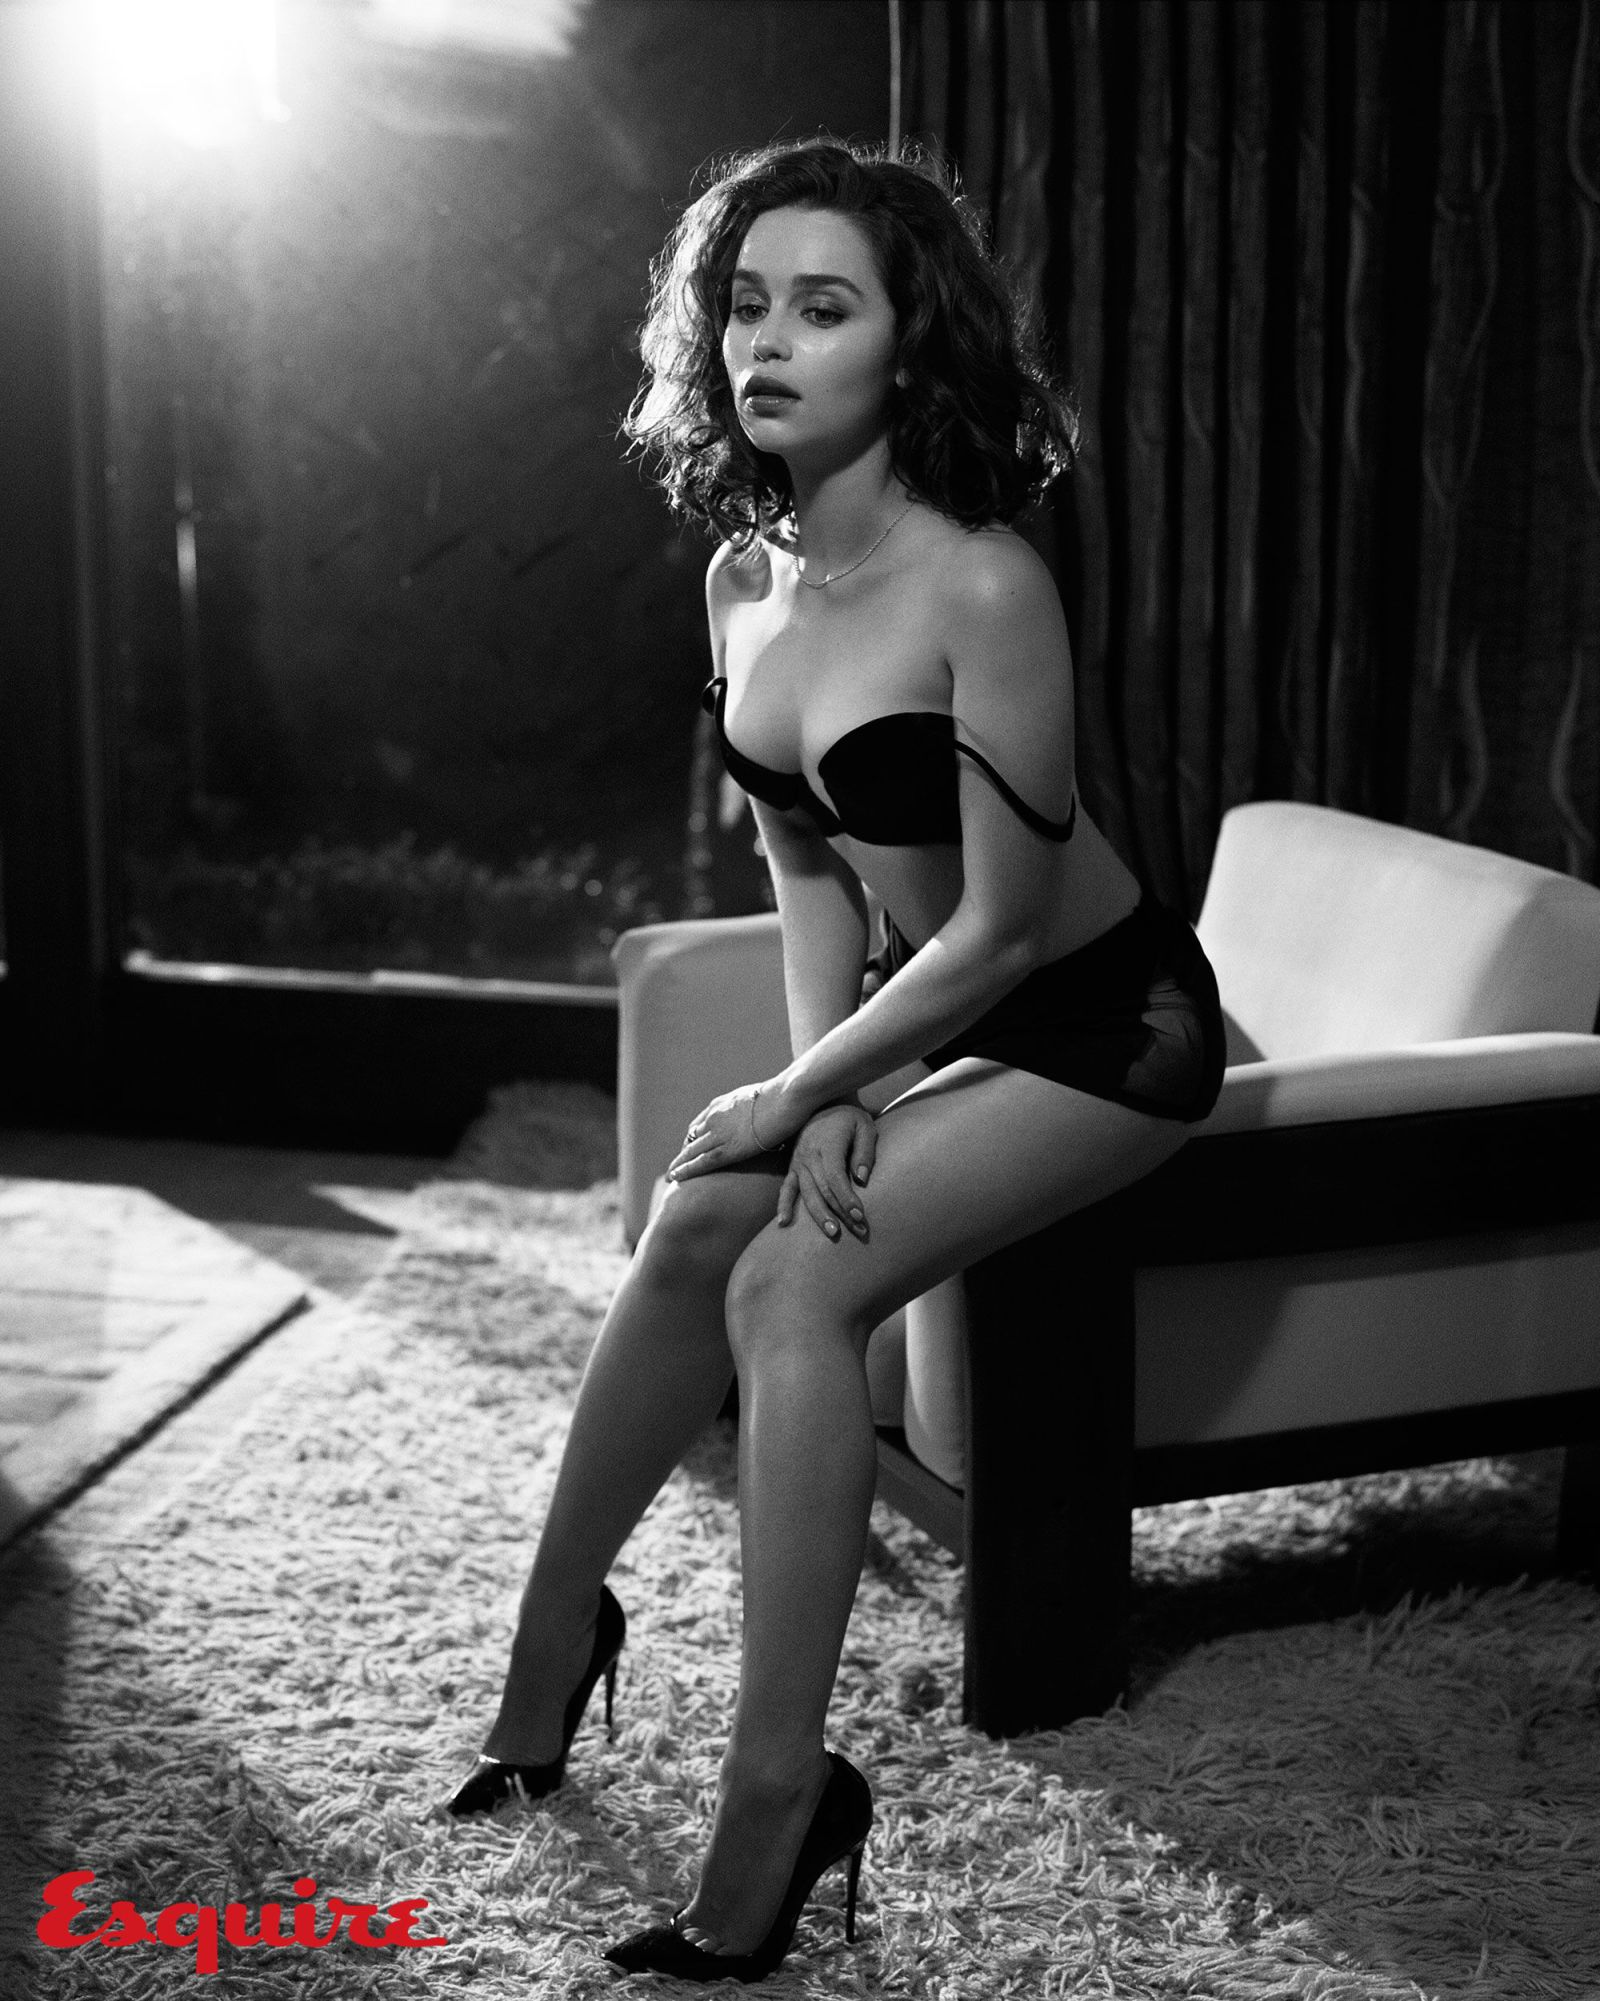 Emilia Clarke Is the Sexiest Woman Alive 2015 | ARCHITECTURE